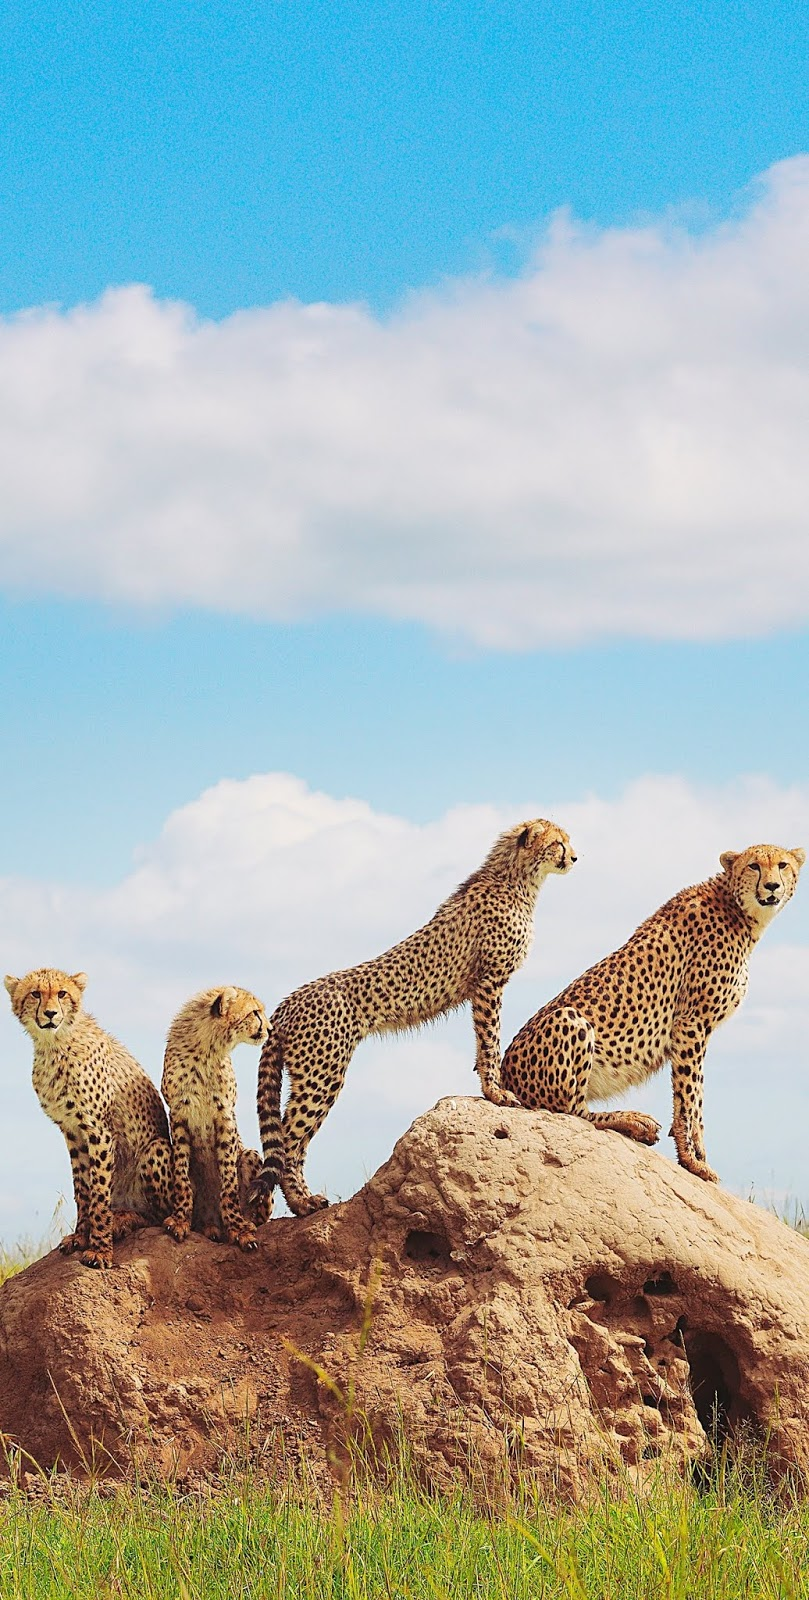 A cheetah with her young cubs.